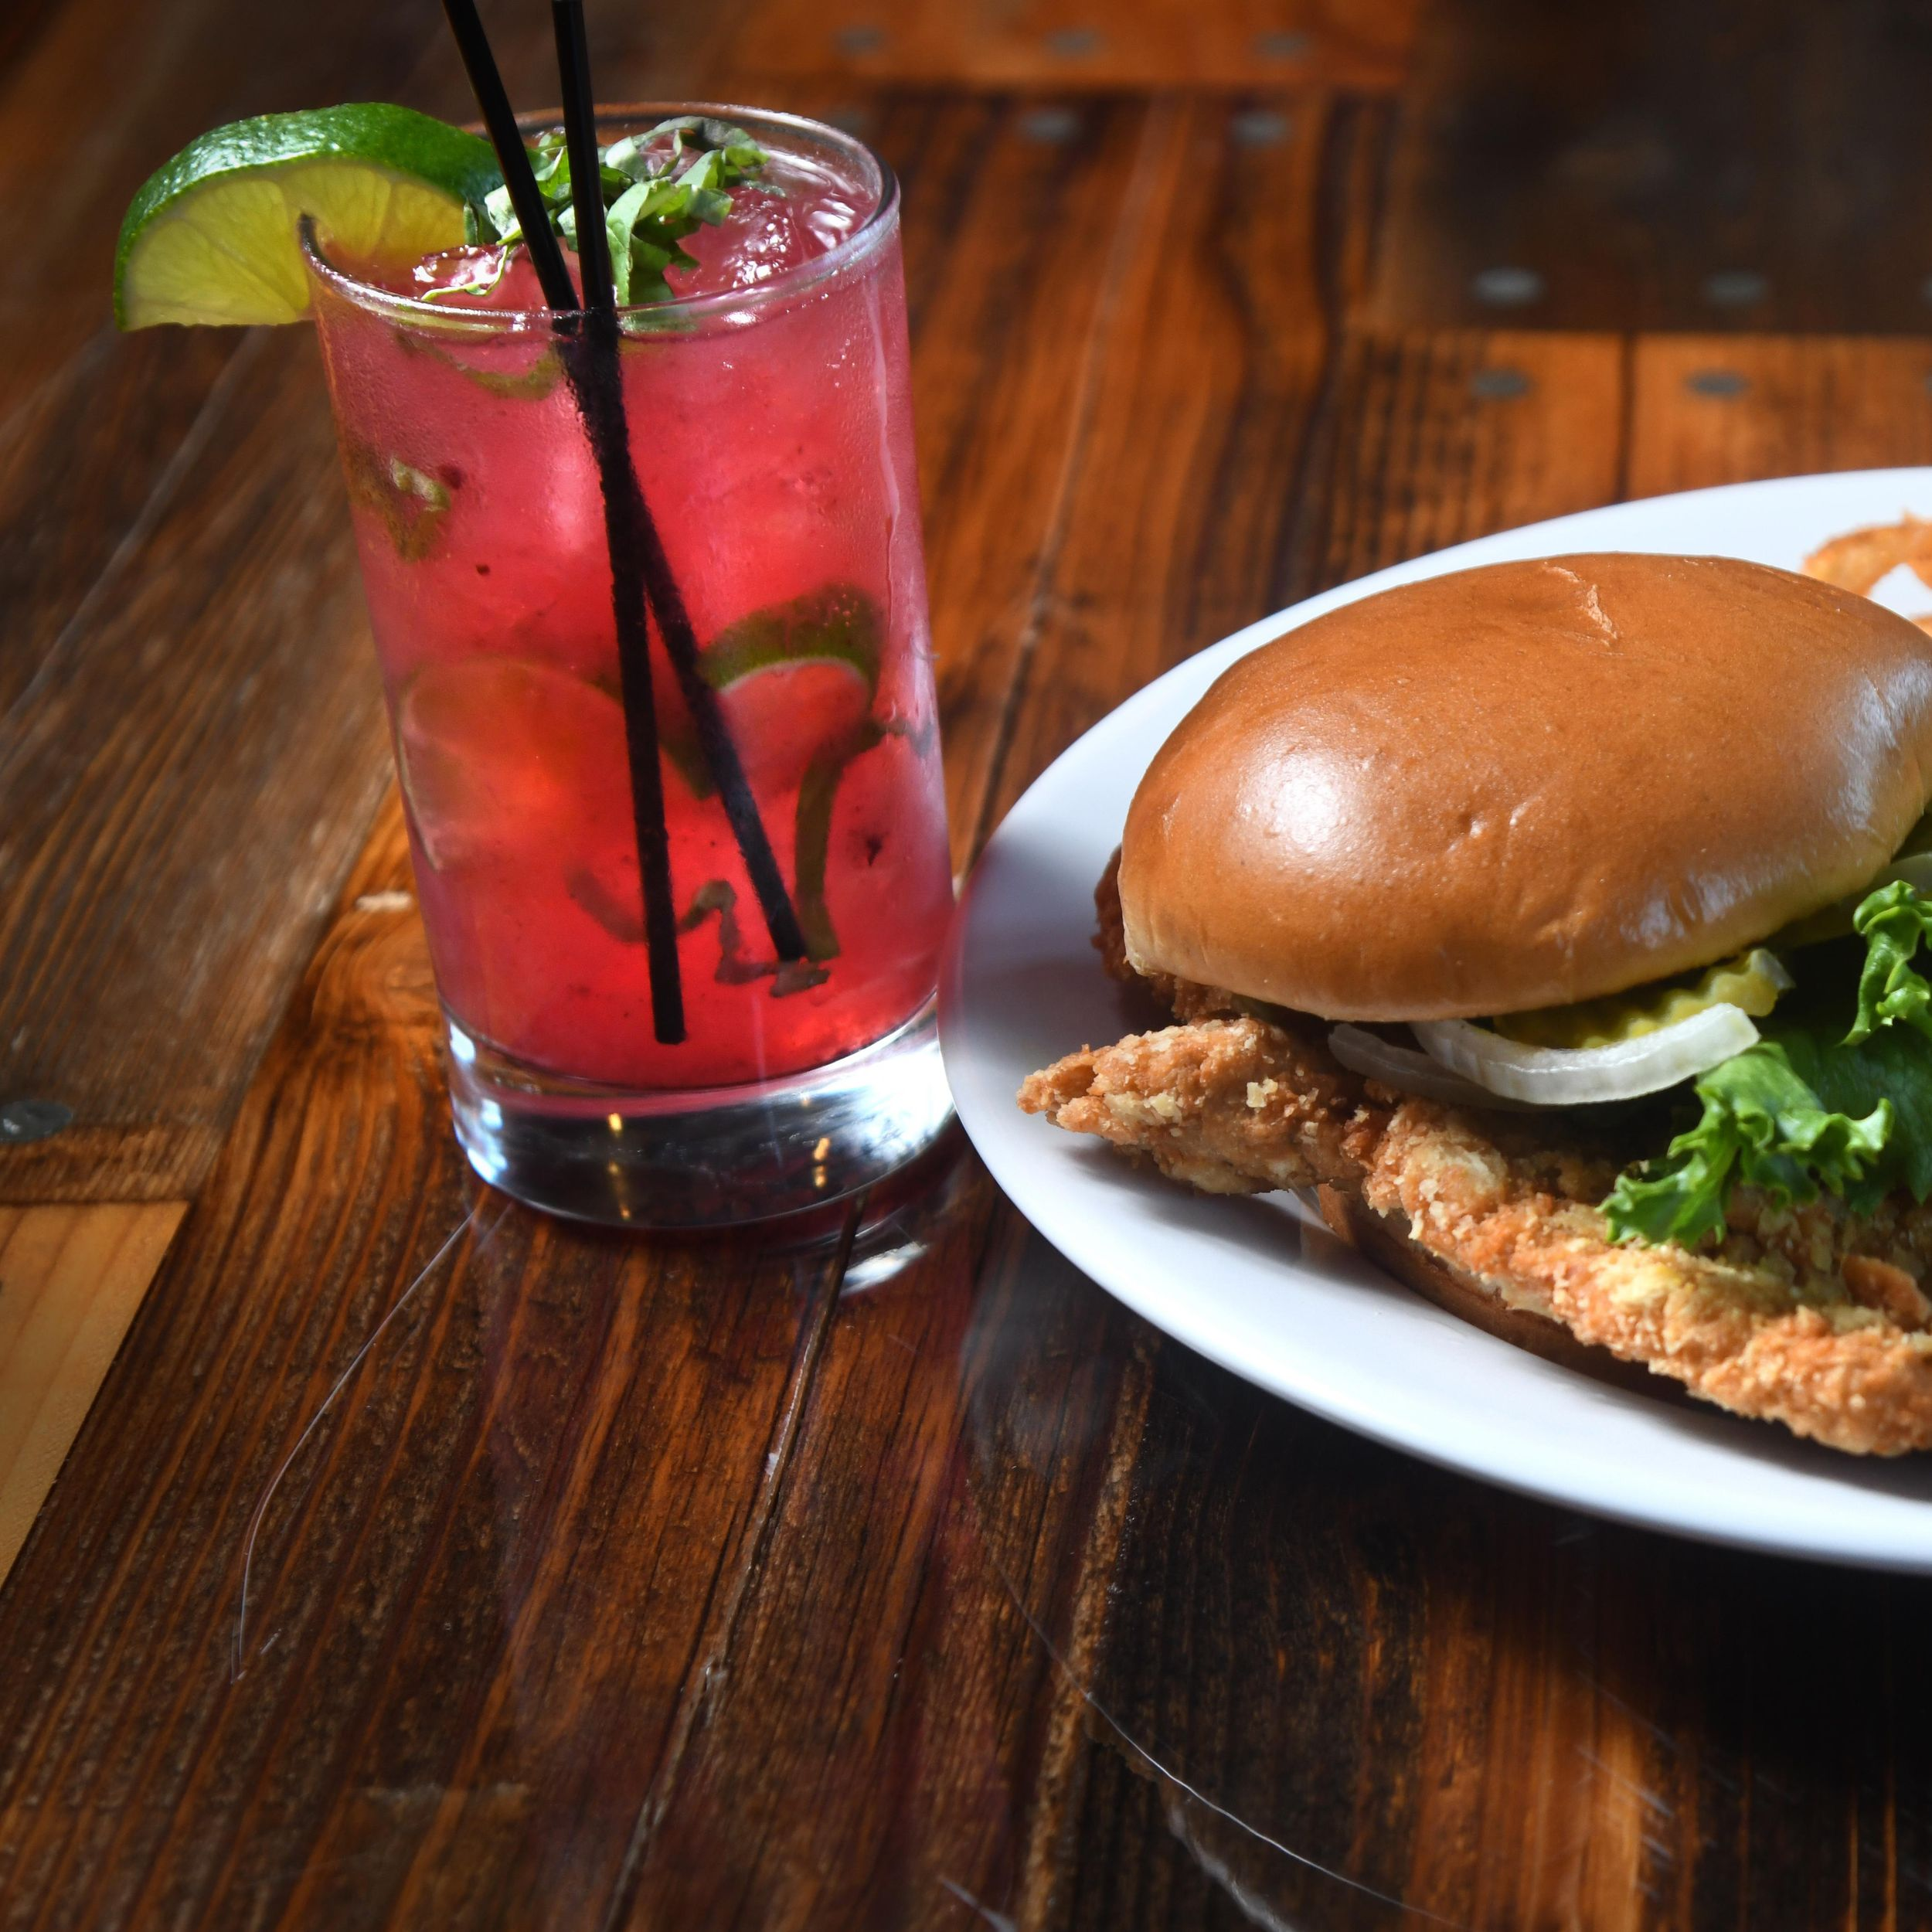 Friends Celebrate Spokane And Their Families With New Heritage Bar And Kitchen The Spokesman Review